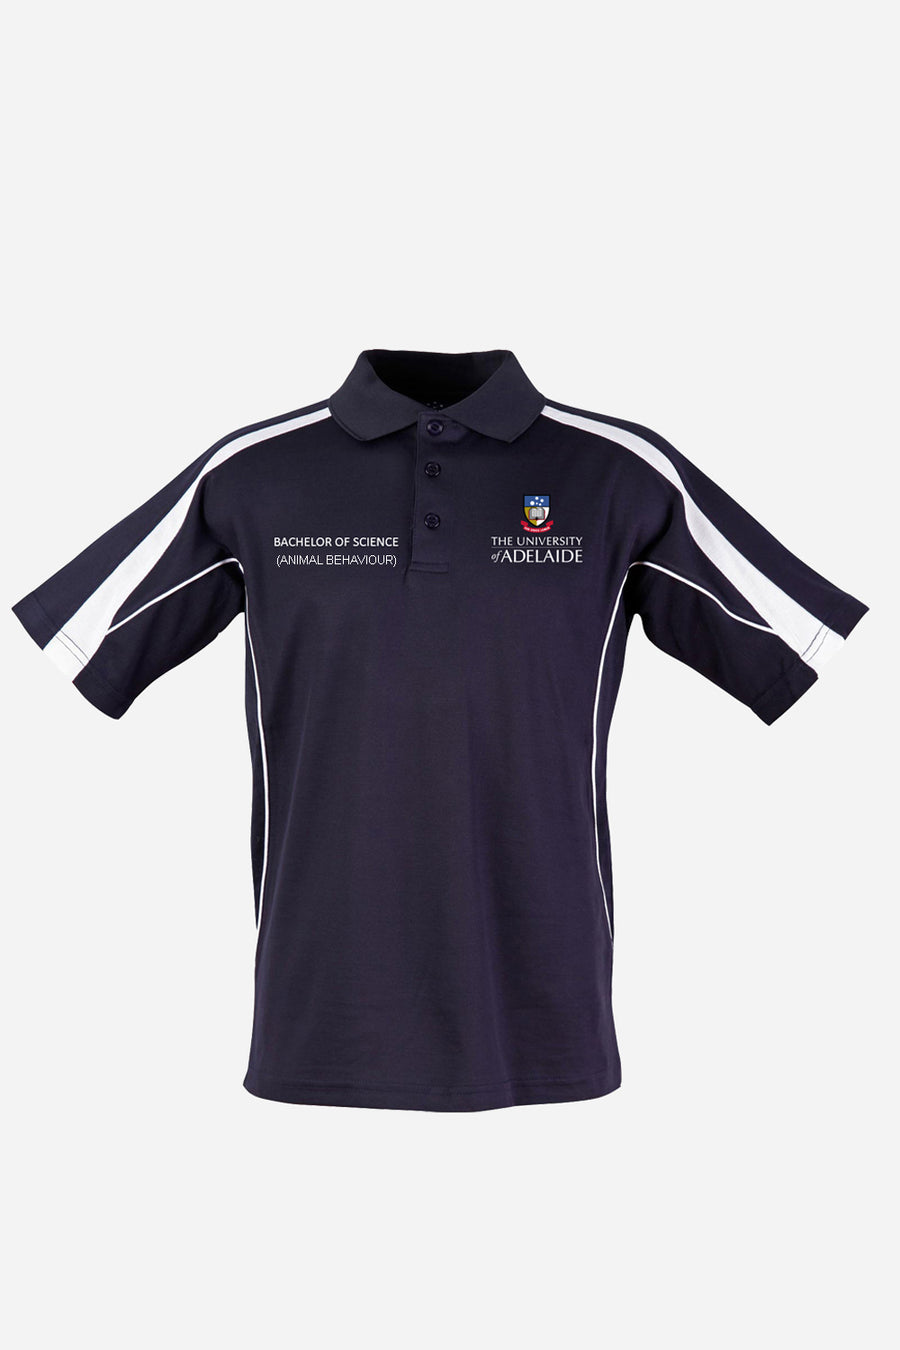 Bachelor of Science (Animal Behaviour) mens polo